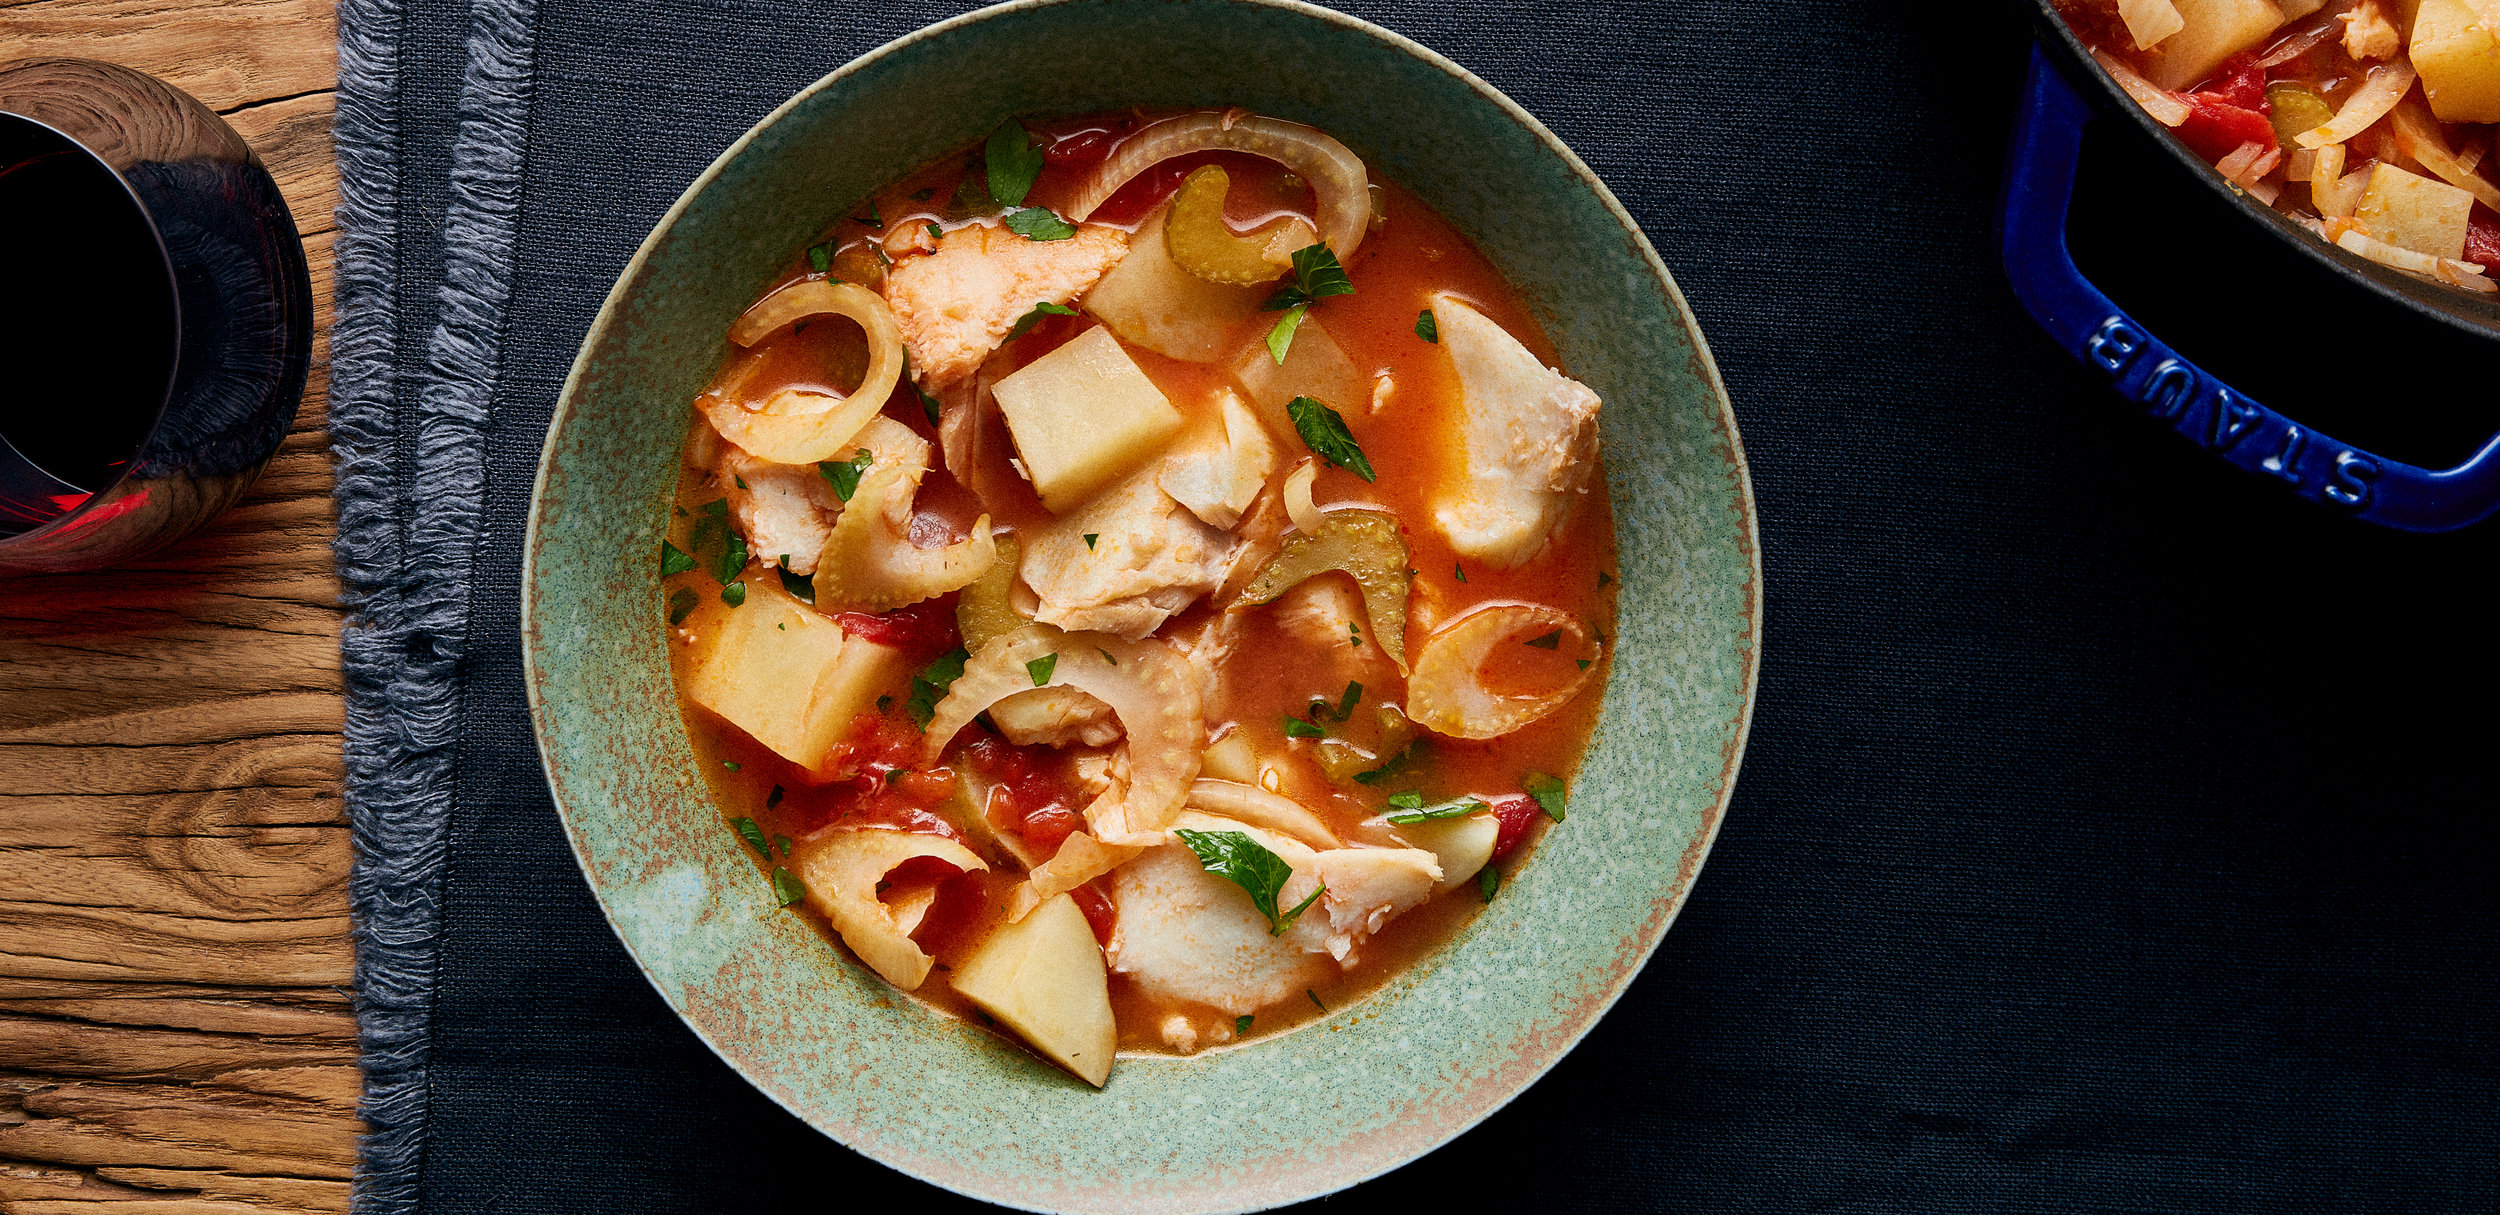 Manhattan Style Cod Chowder with Fingerling Potatoes — 0015 — HERO.jpg